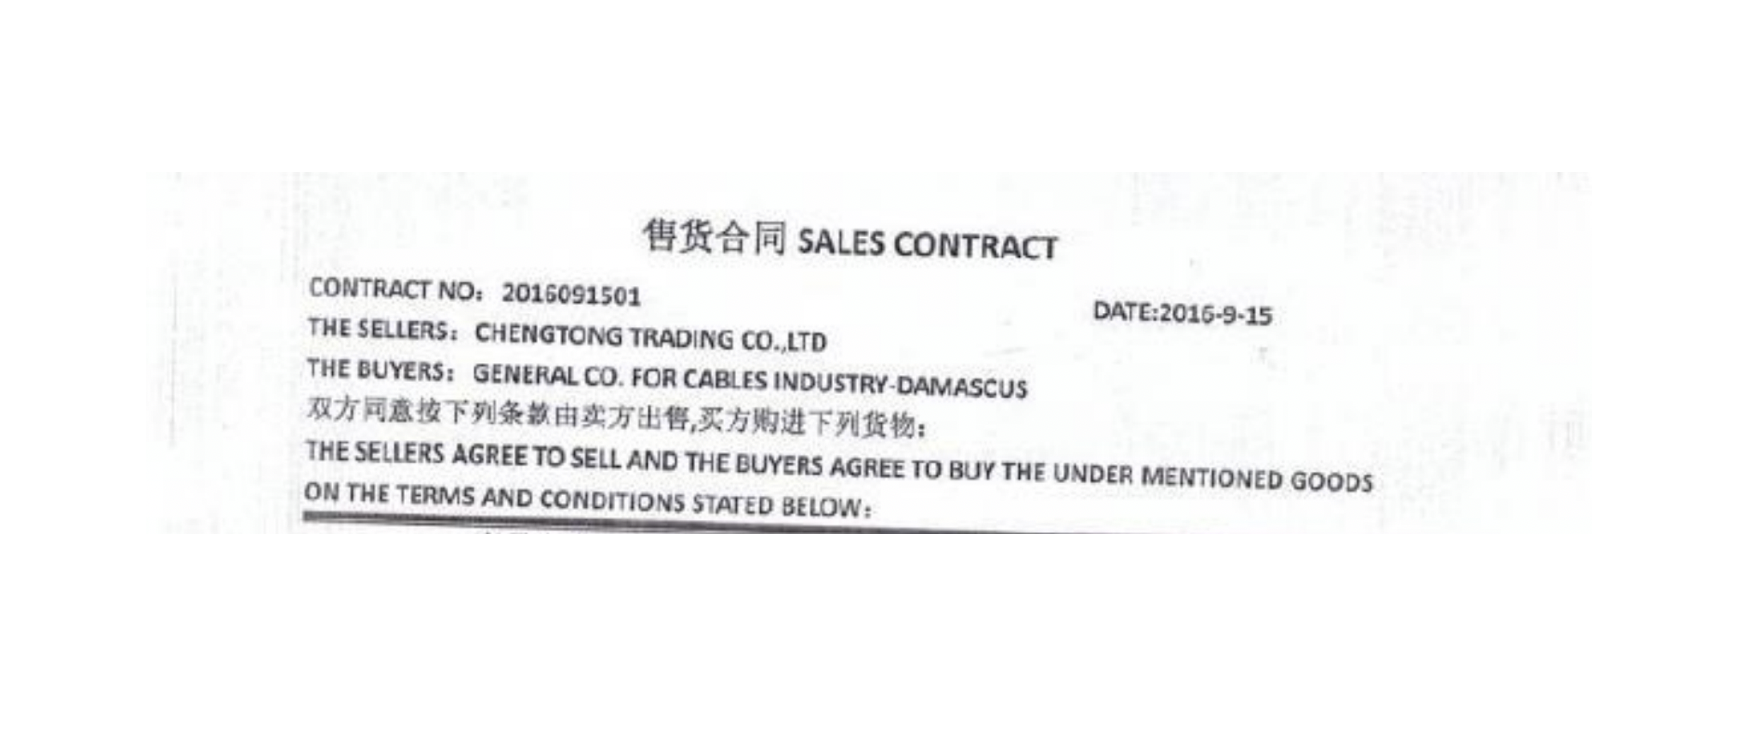 Sales contract between General Company for Cable Industry and Chengtong Trading Co., Ltd. Source:    UN Panel of Experts Report